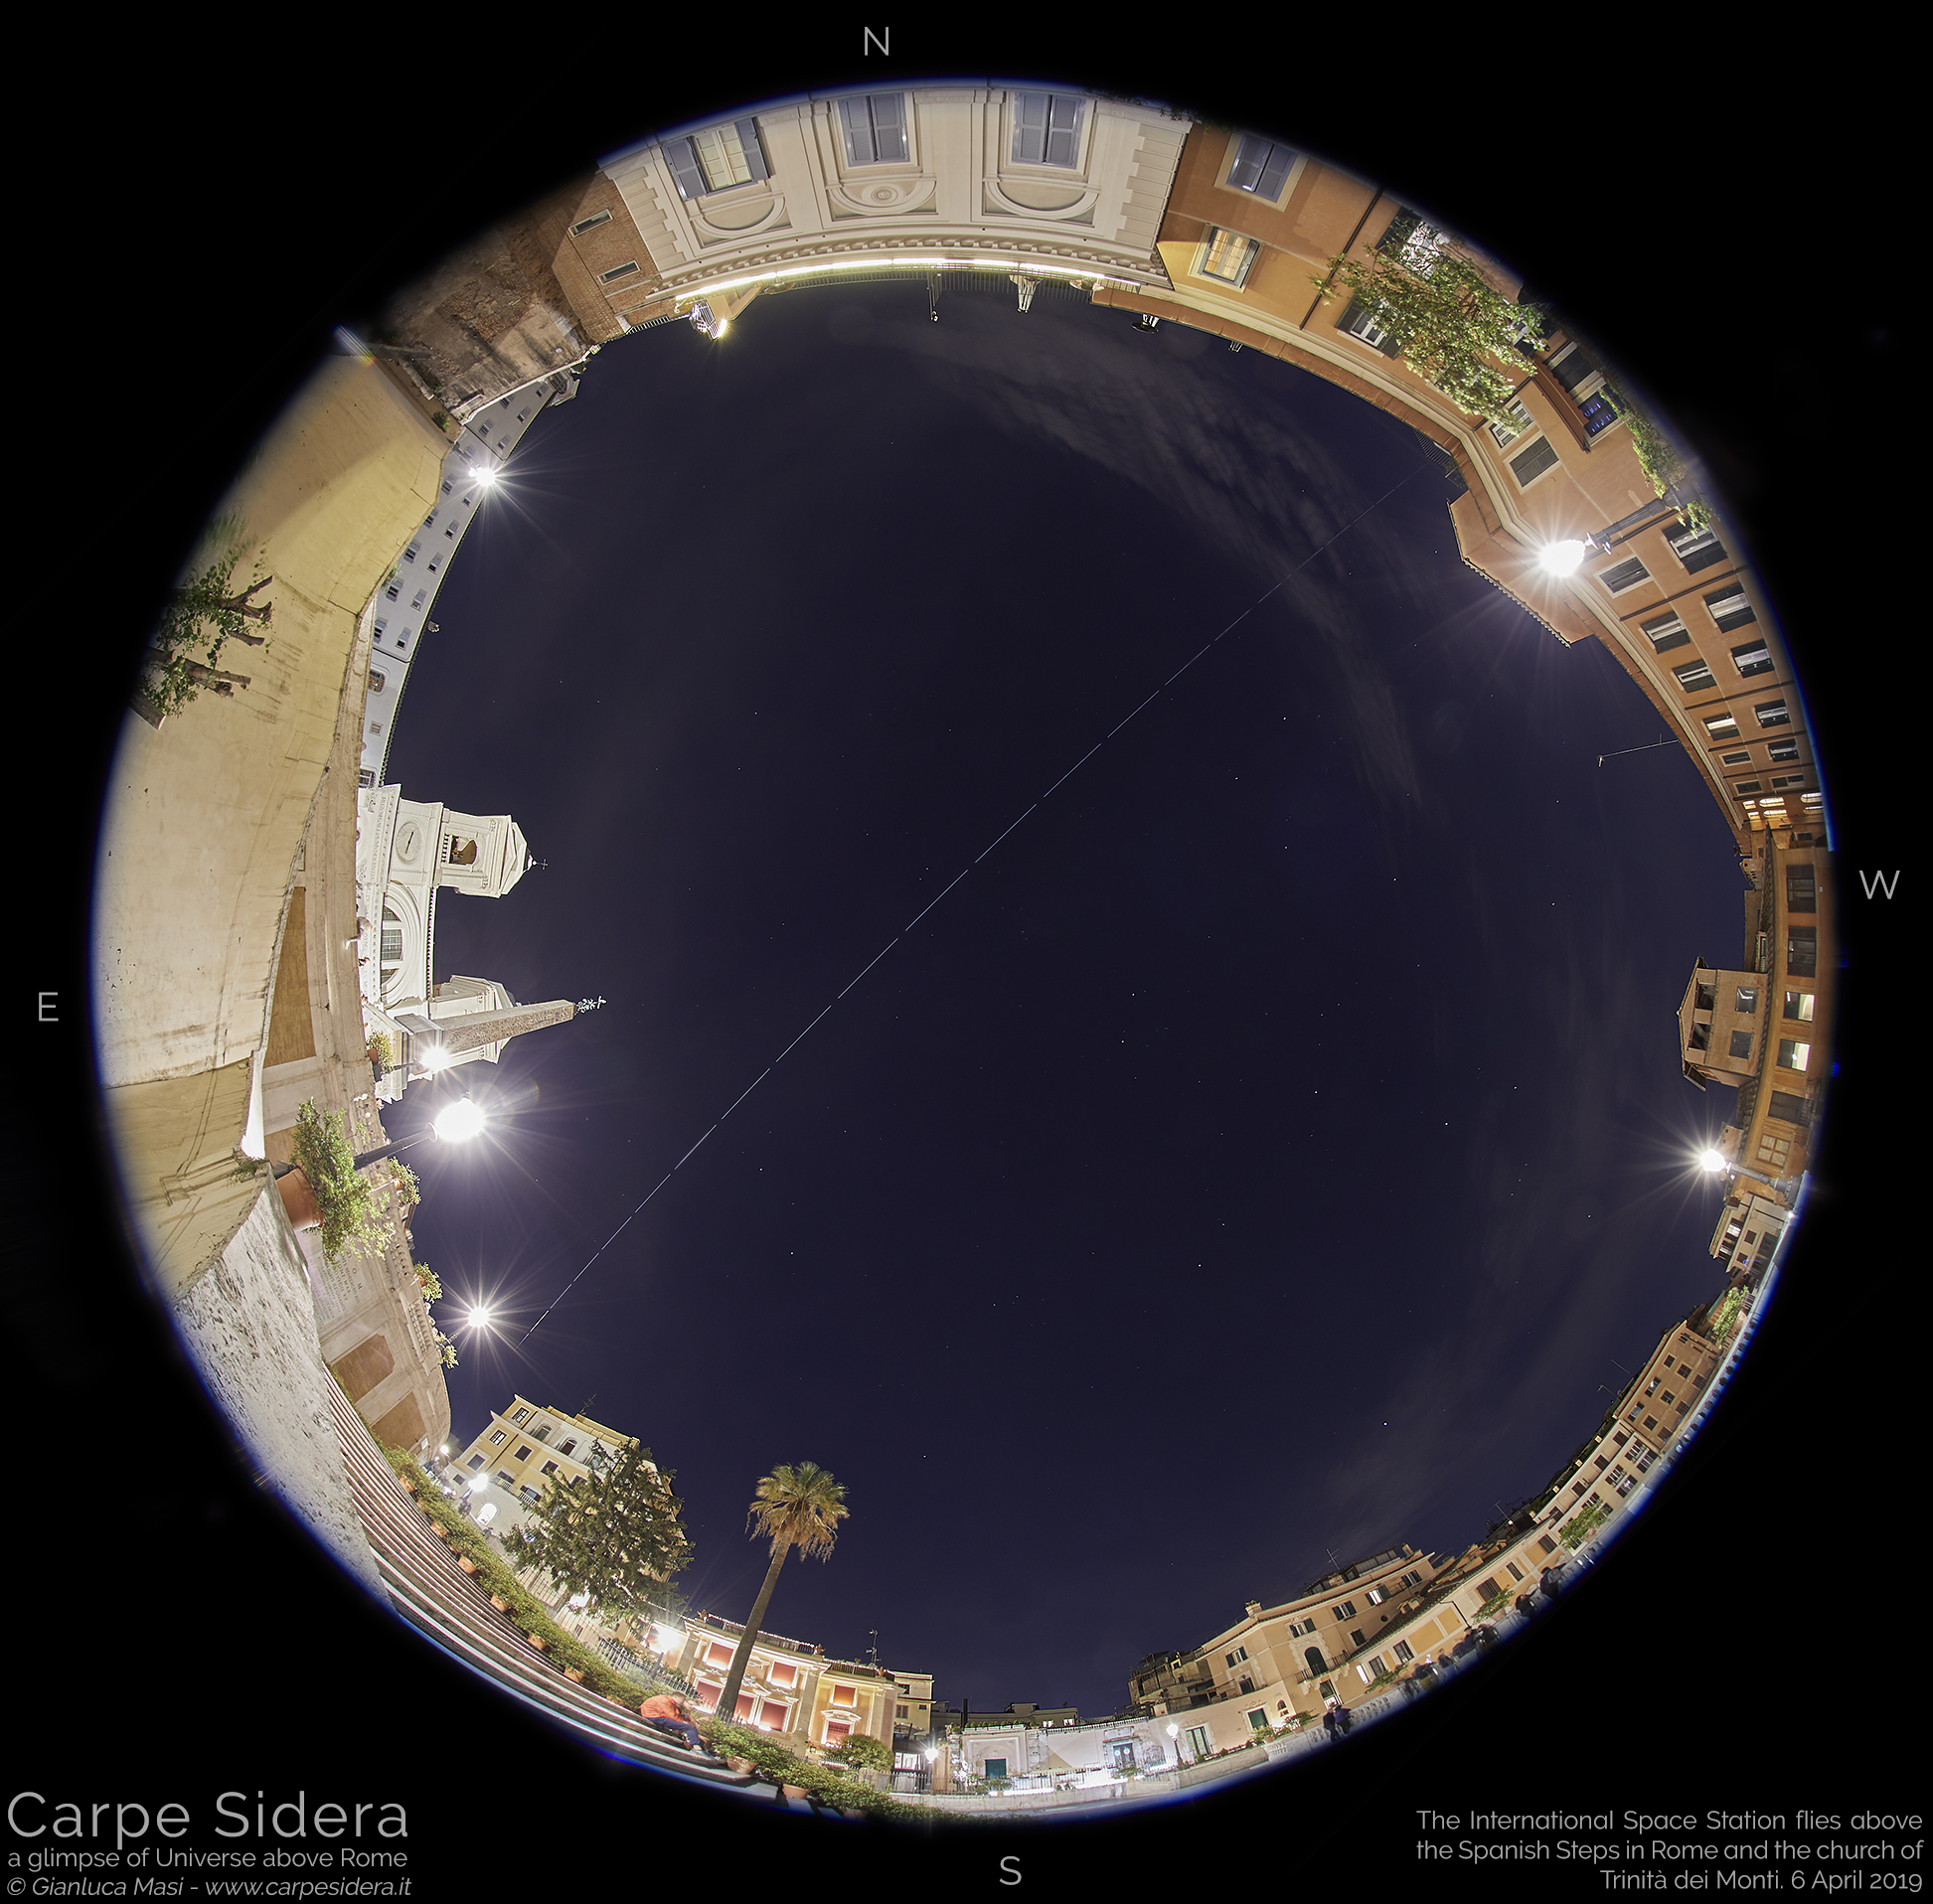 The International Space Station makes a spectacular pass above the Spanish Steps and Trinità dei Monti in Rome - 6 Apr. 2019